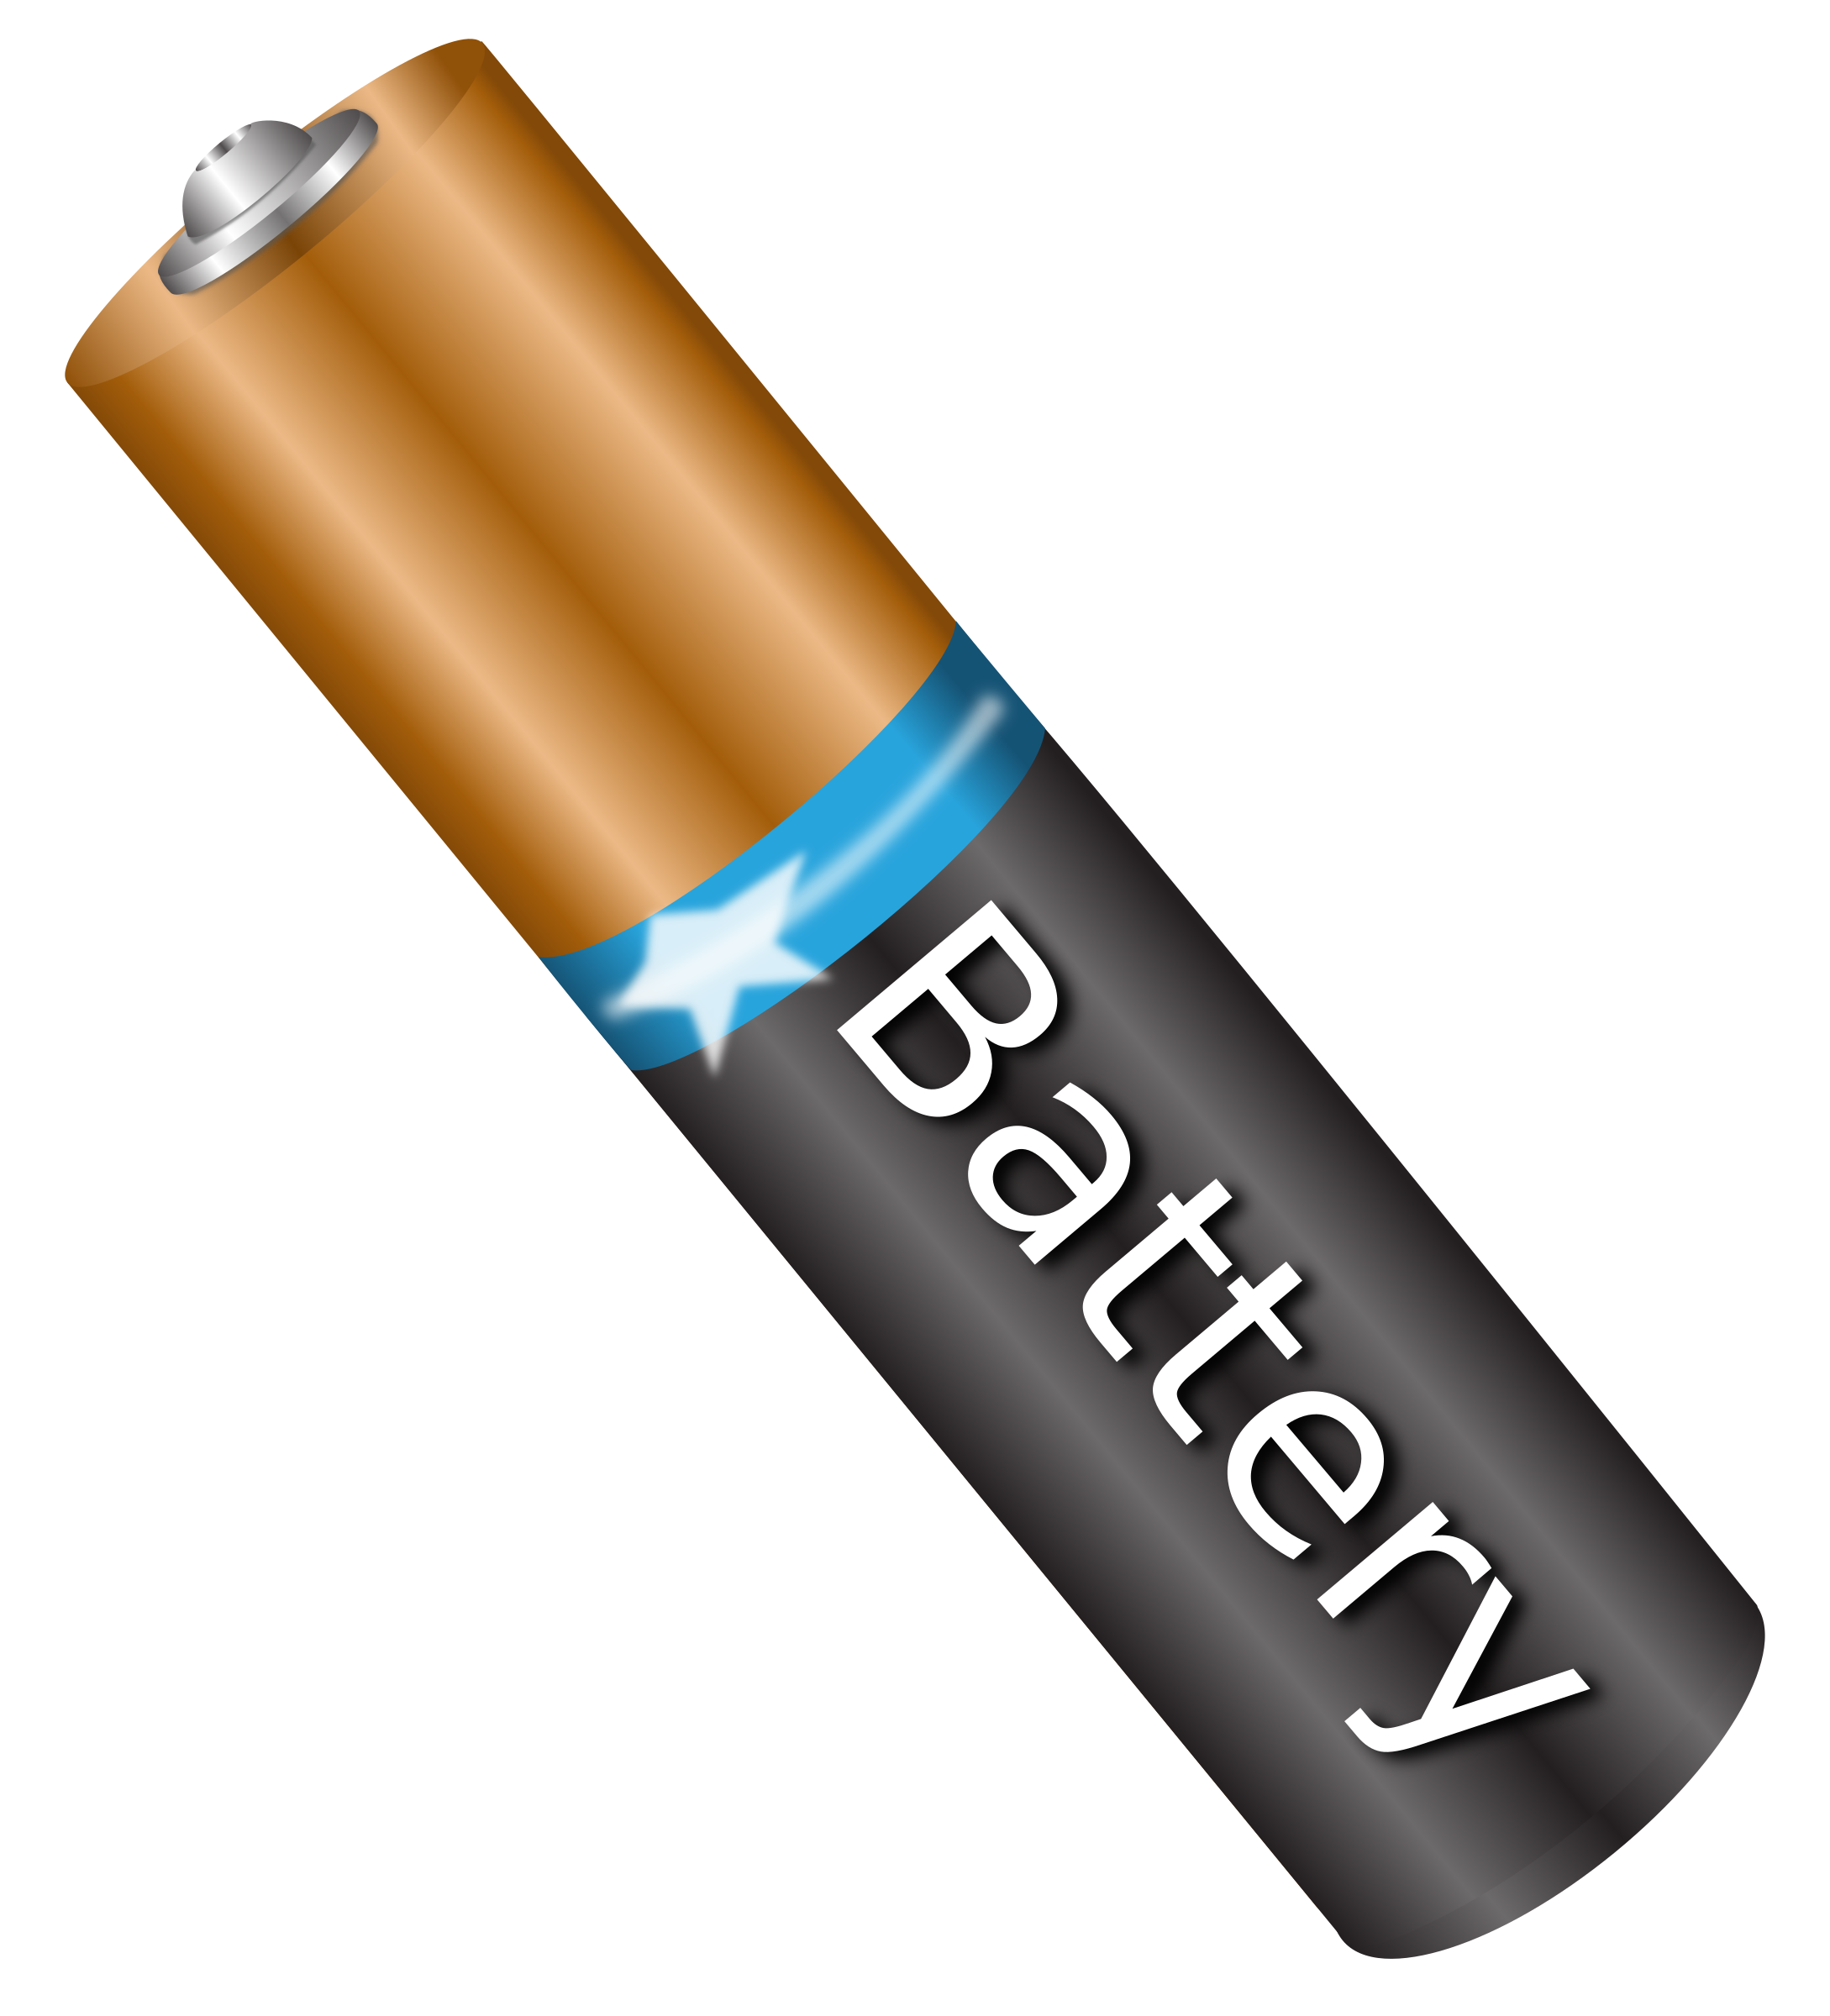 596 Battery free clipart.